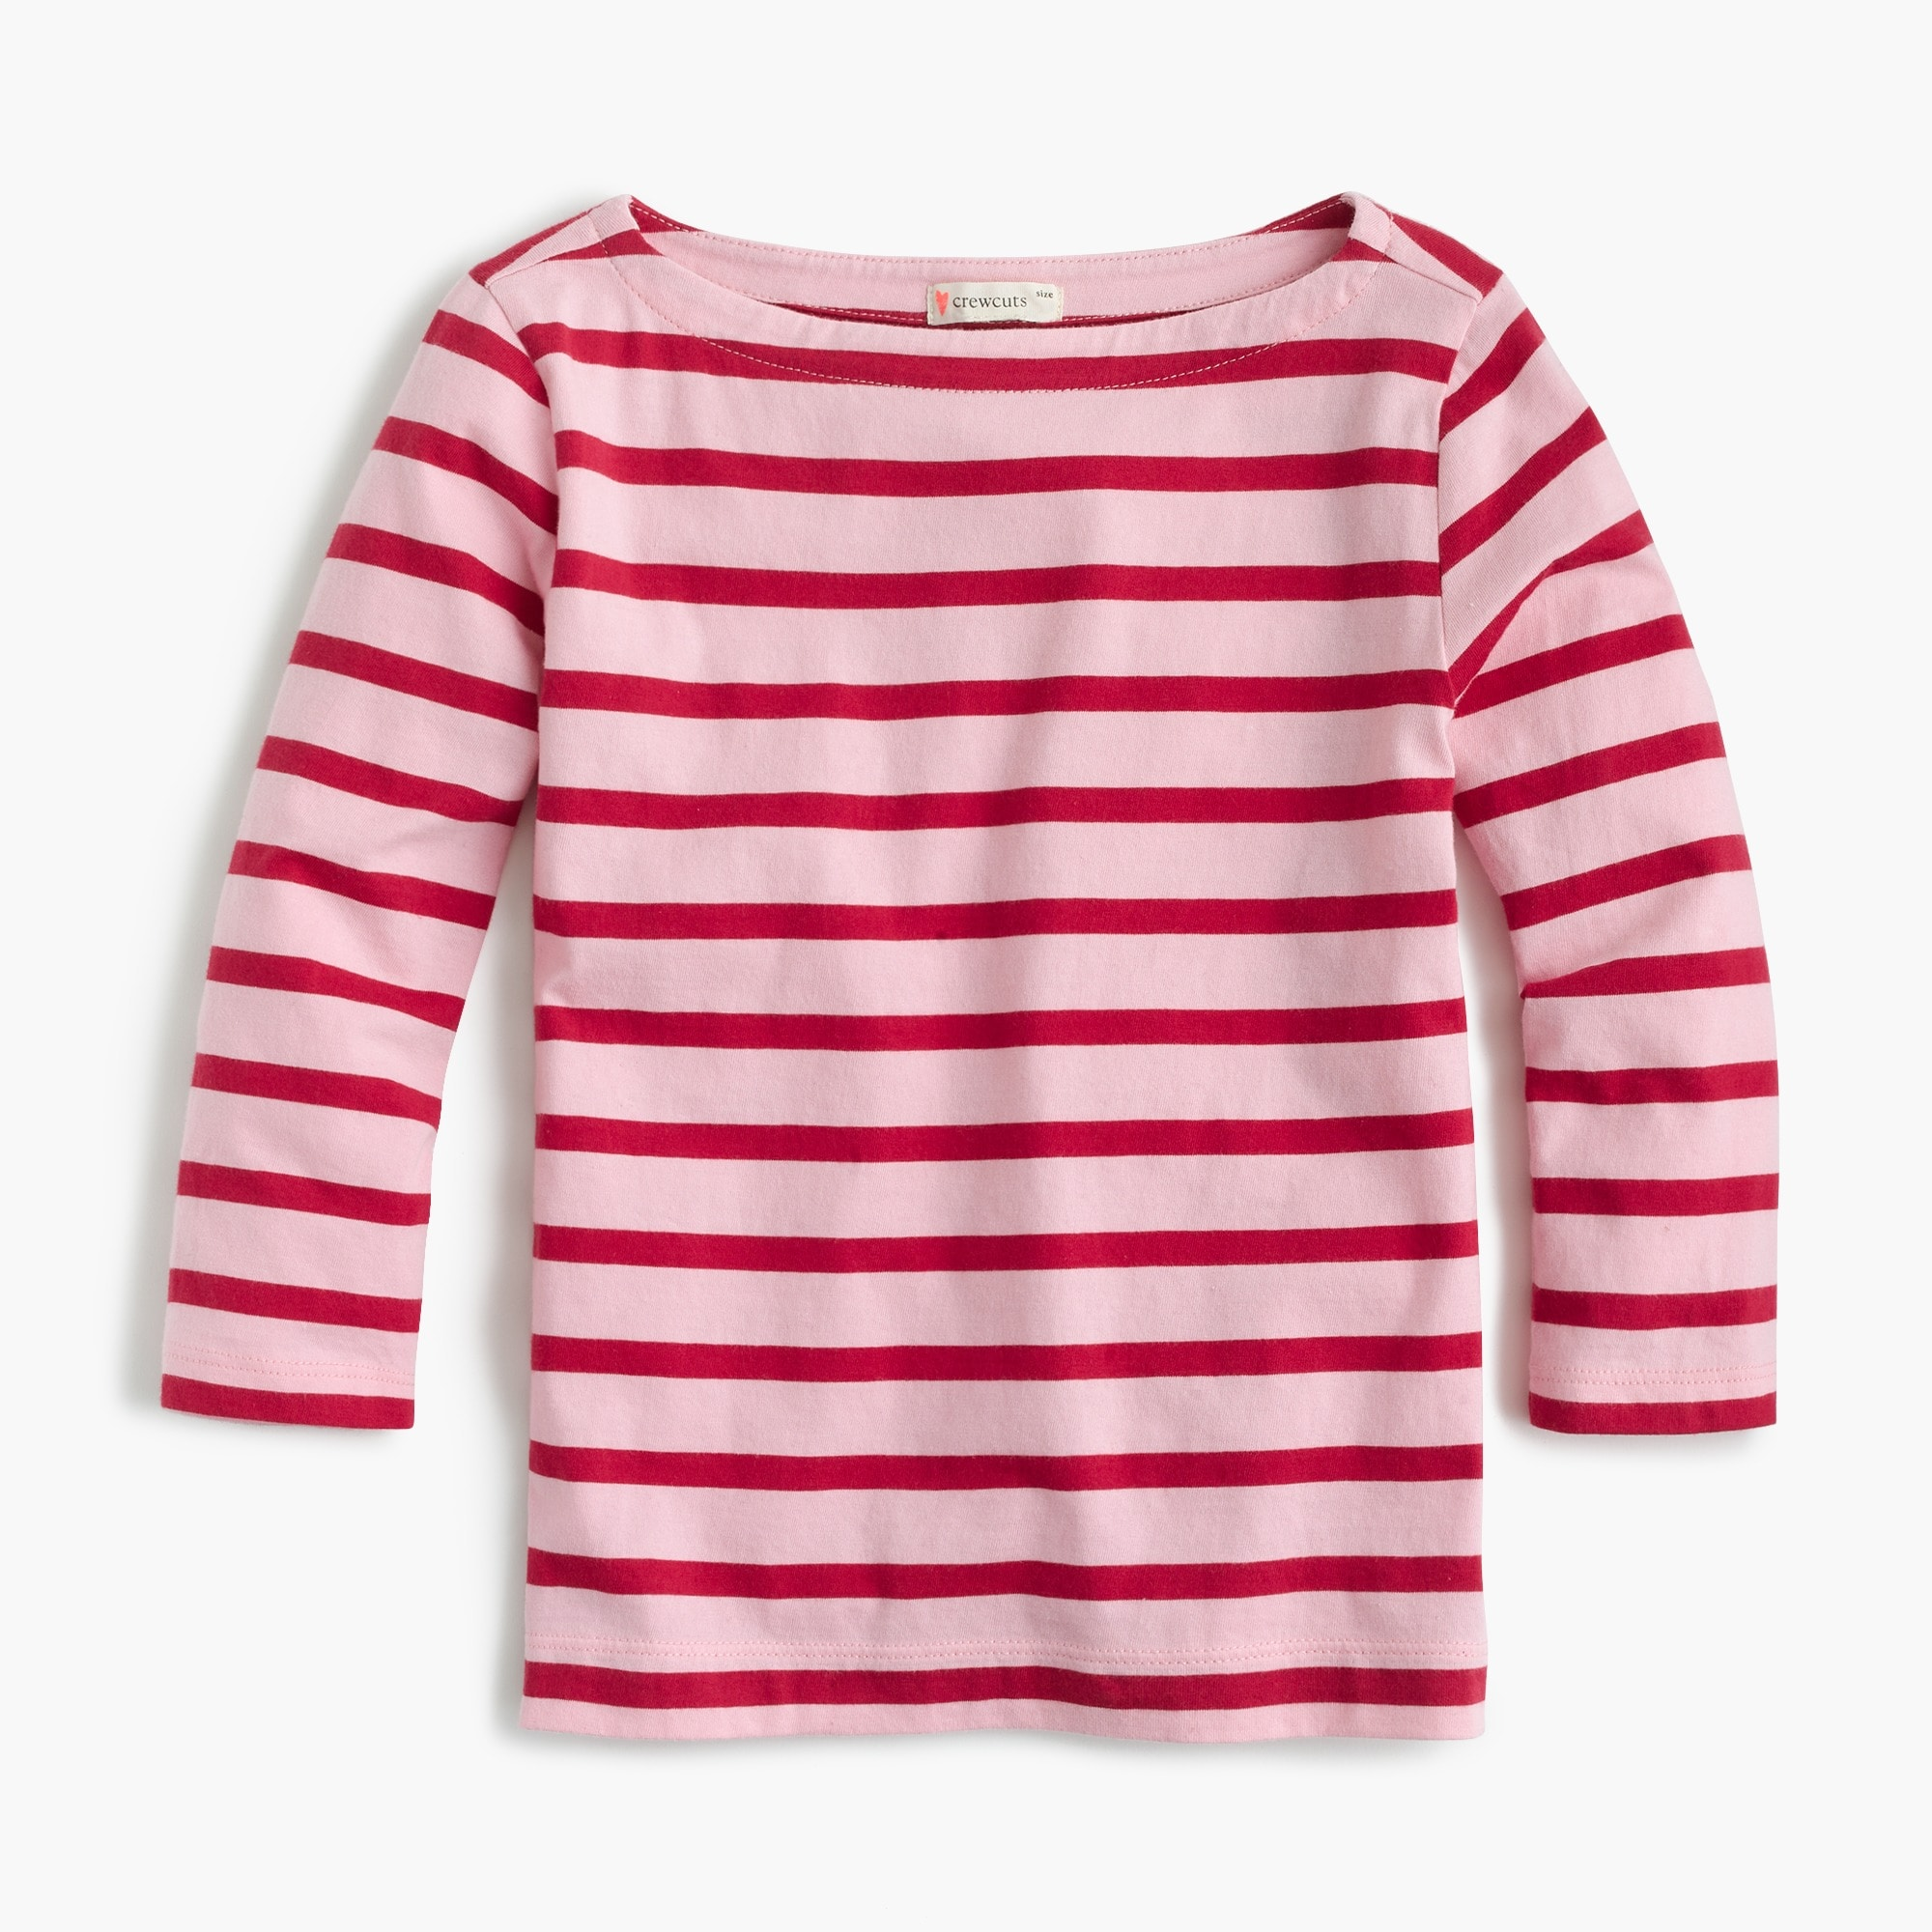 Girls' classic striped T-shirt